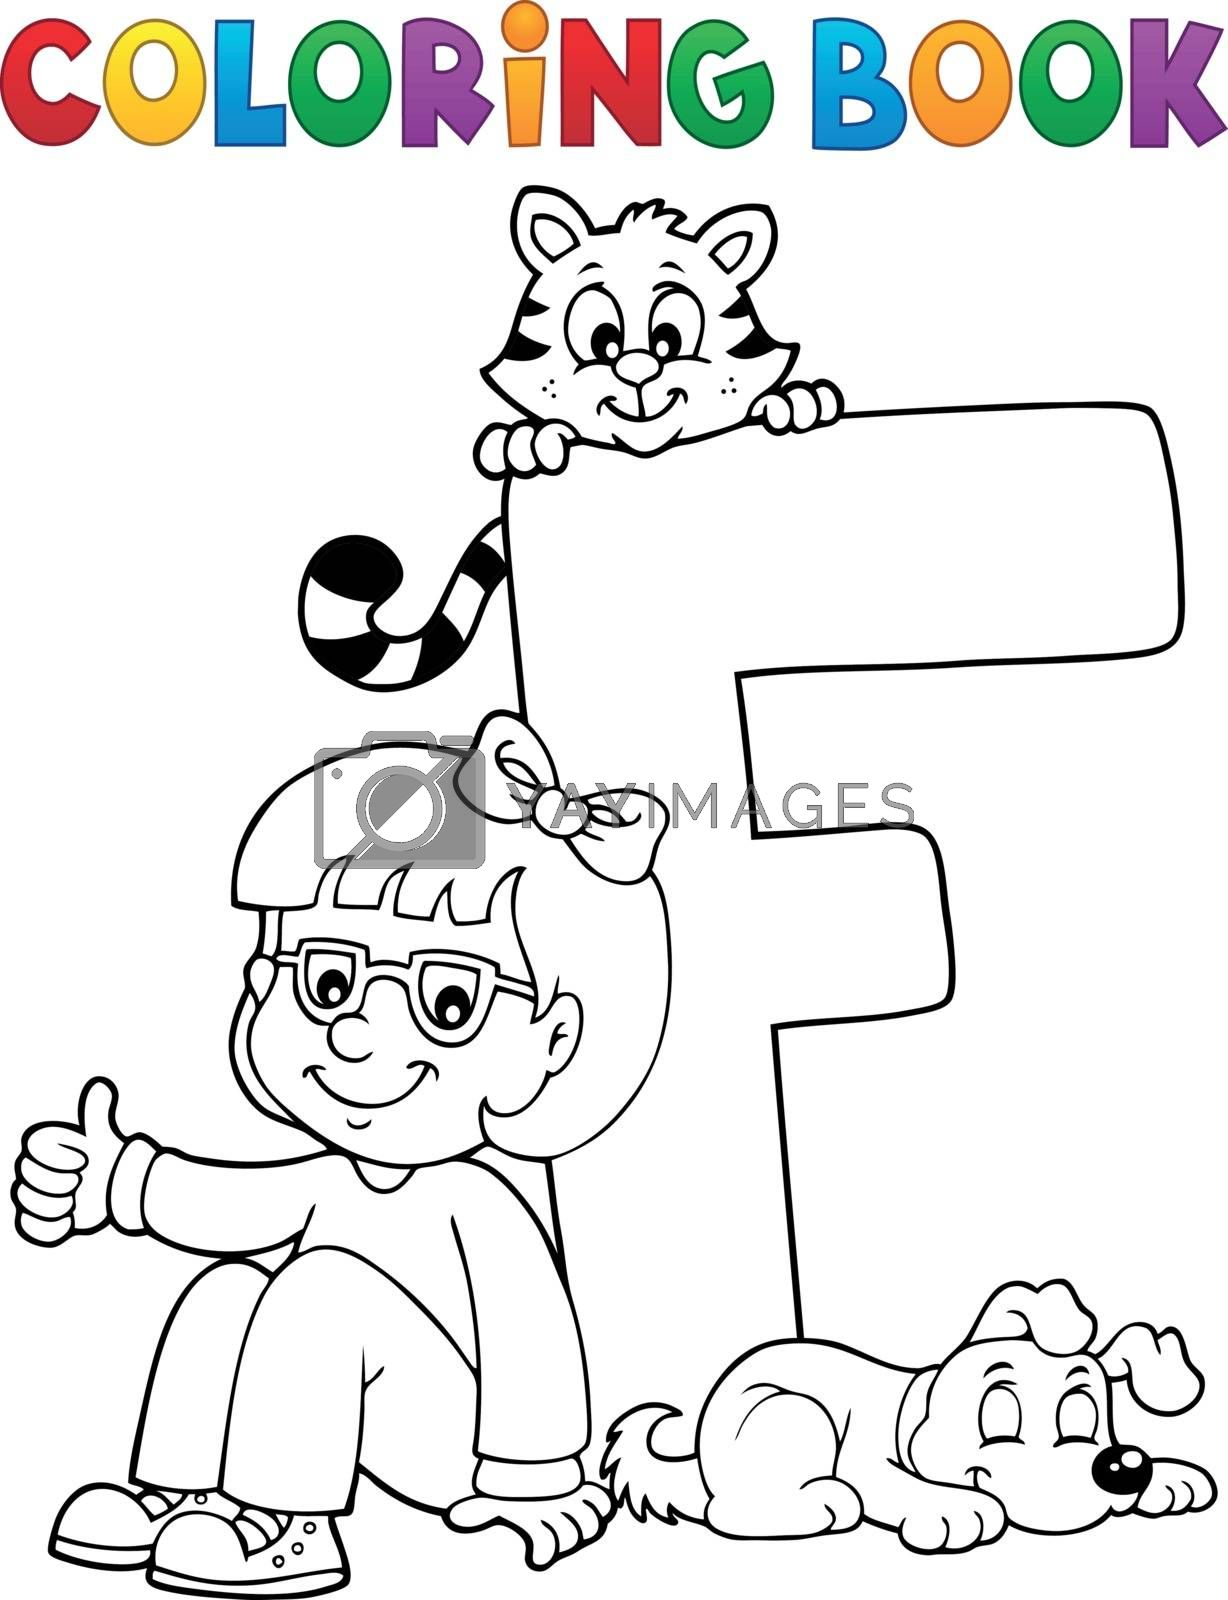 Coloring book girl and pets by letter F - eps10 vector illustration.